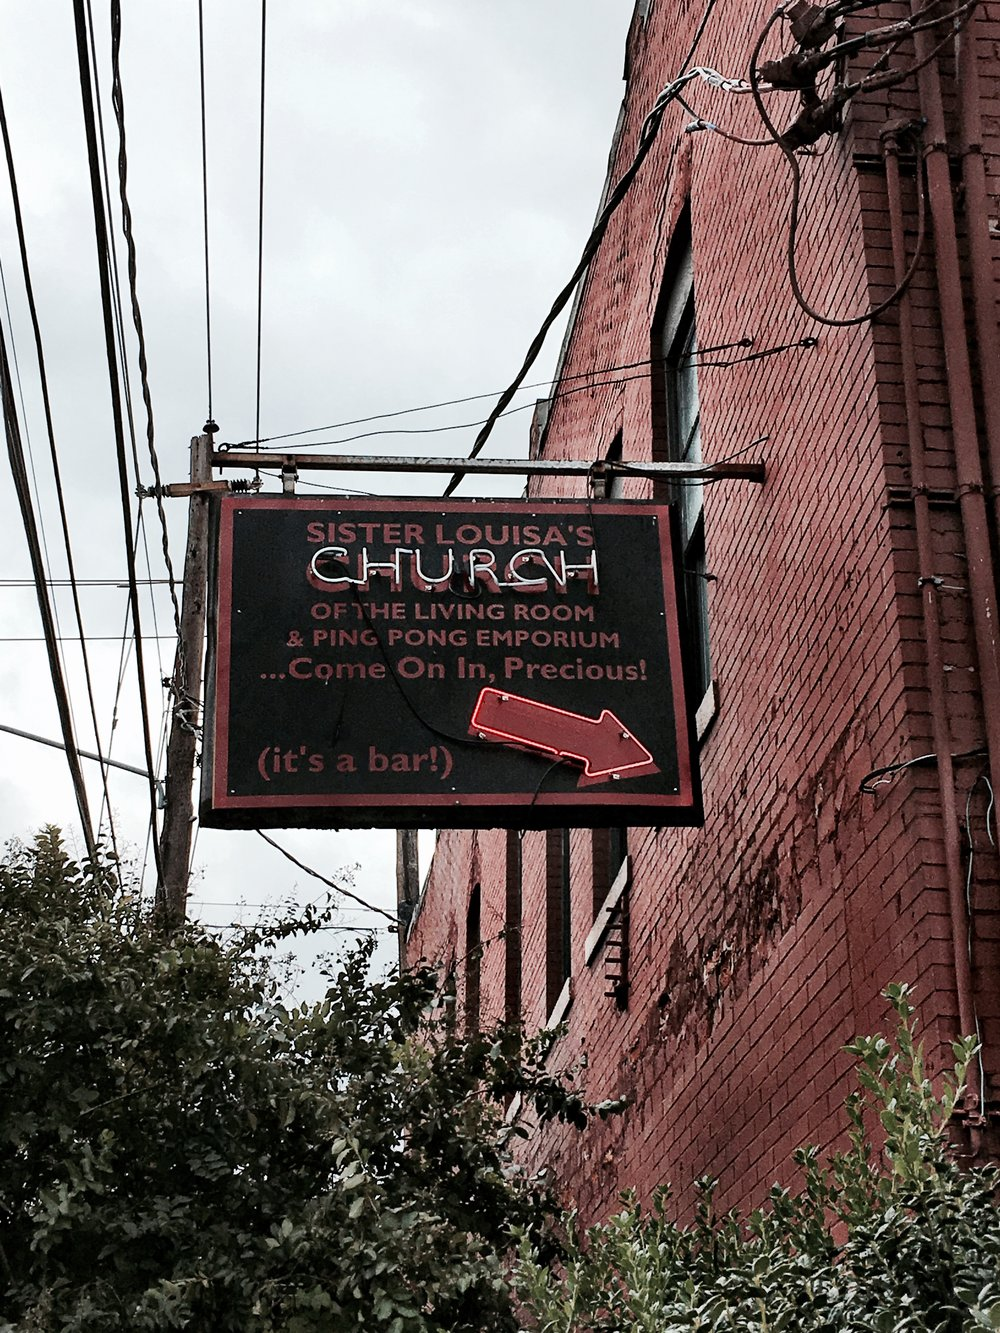 Sweet Auburn Sister Louise Church.jpg